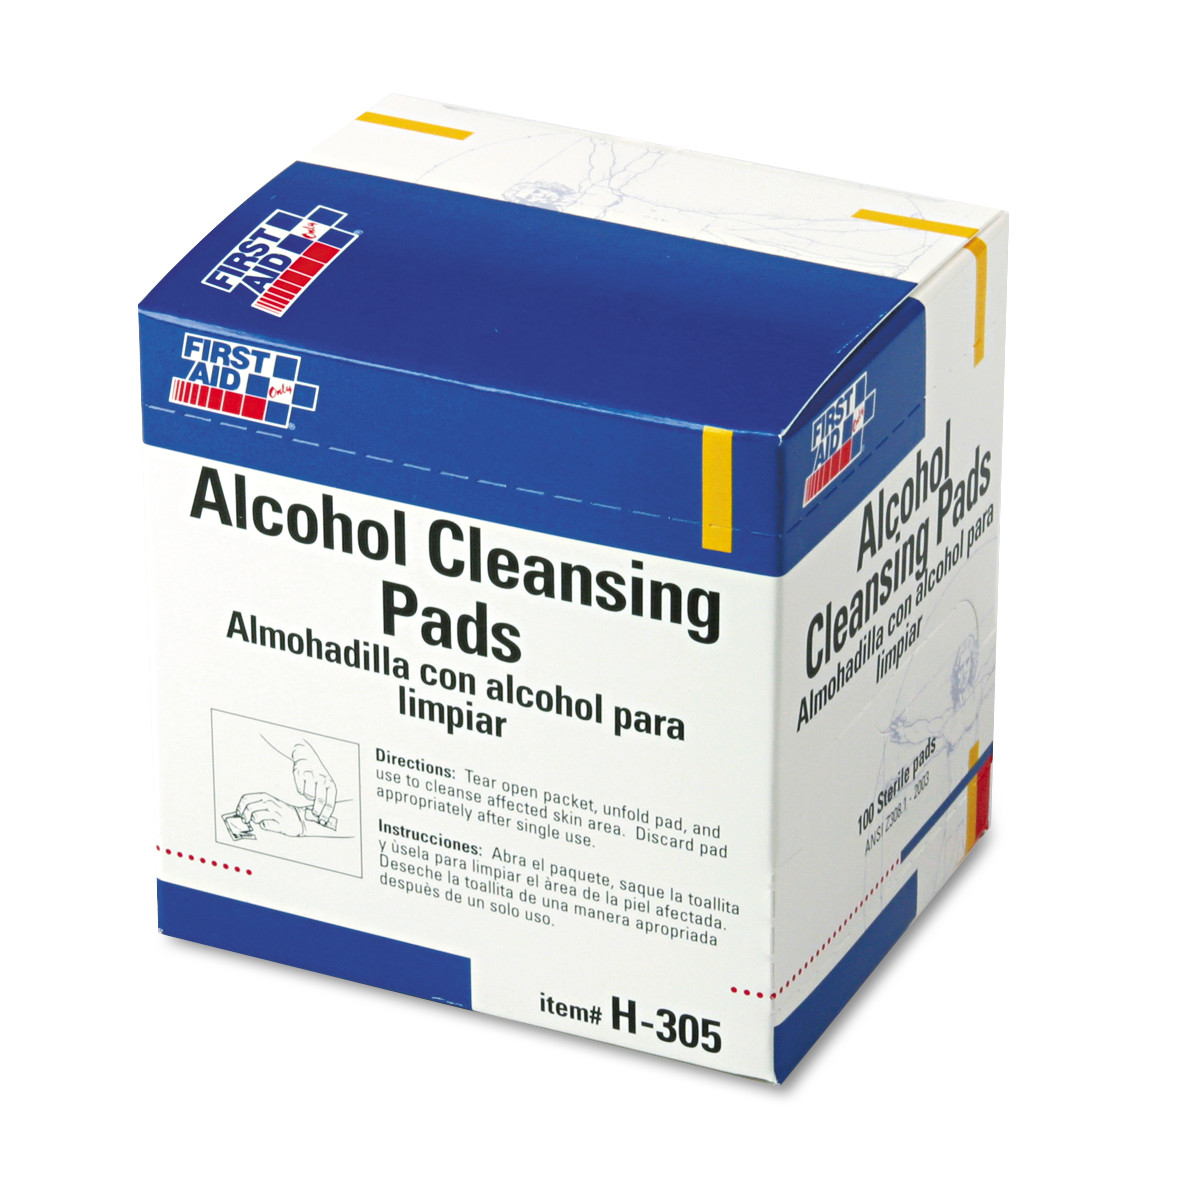 First Aid Only Alcohol Cleansing Pads, Dispenser Box, 100/Box